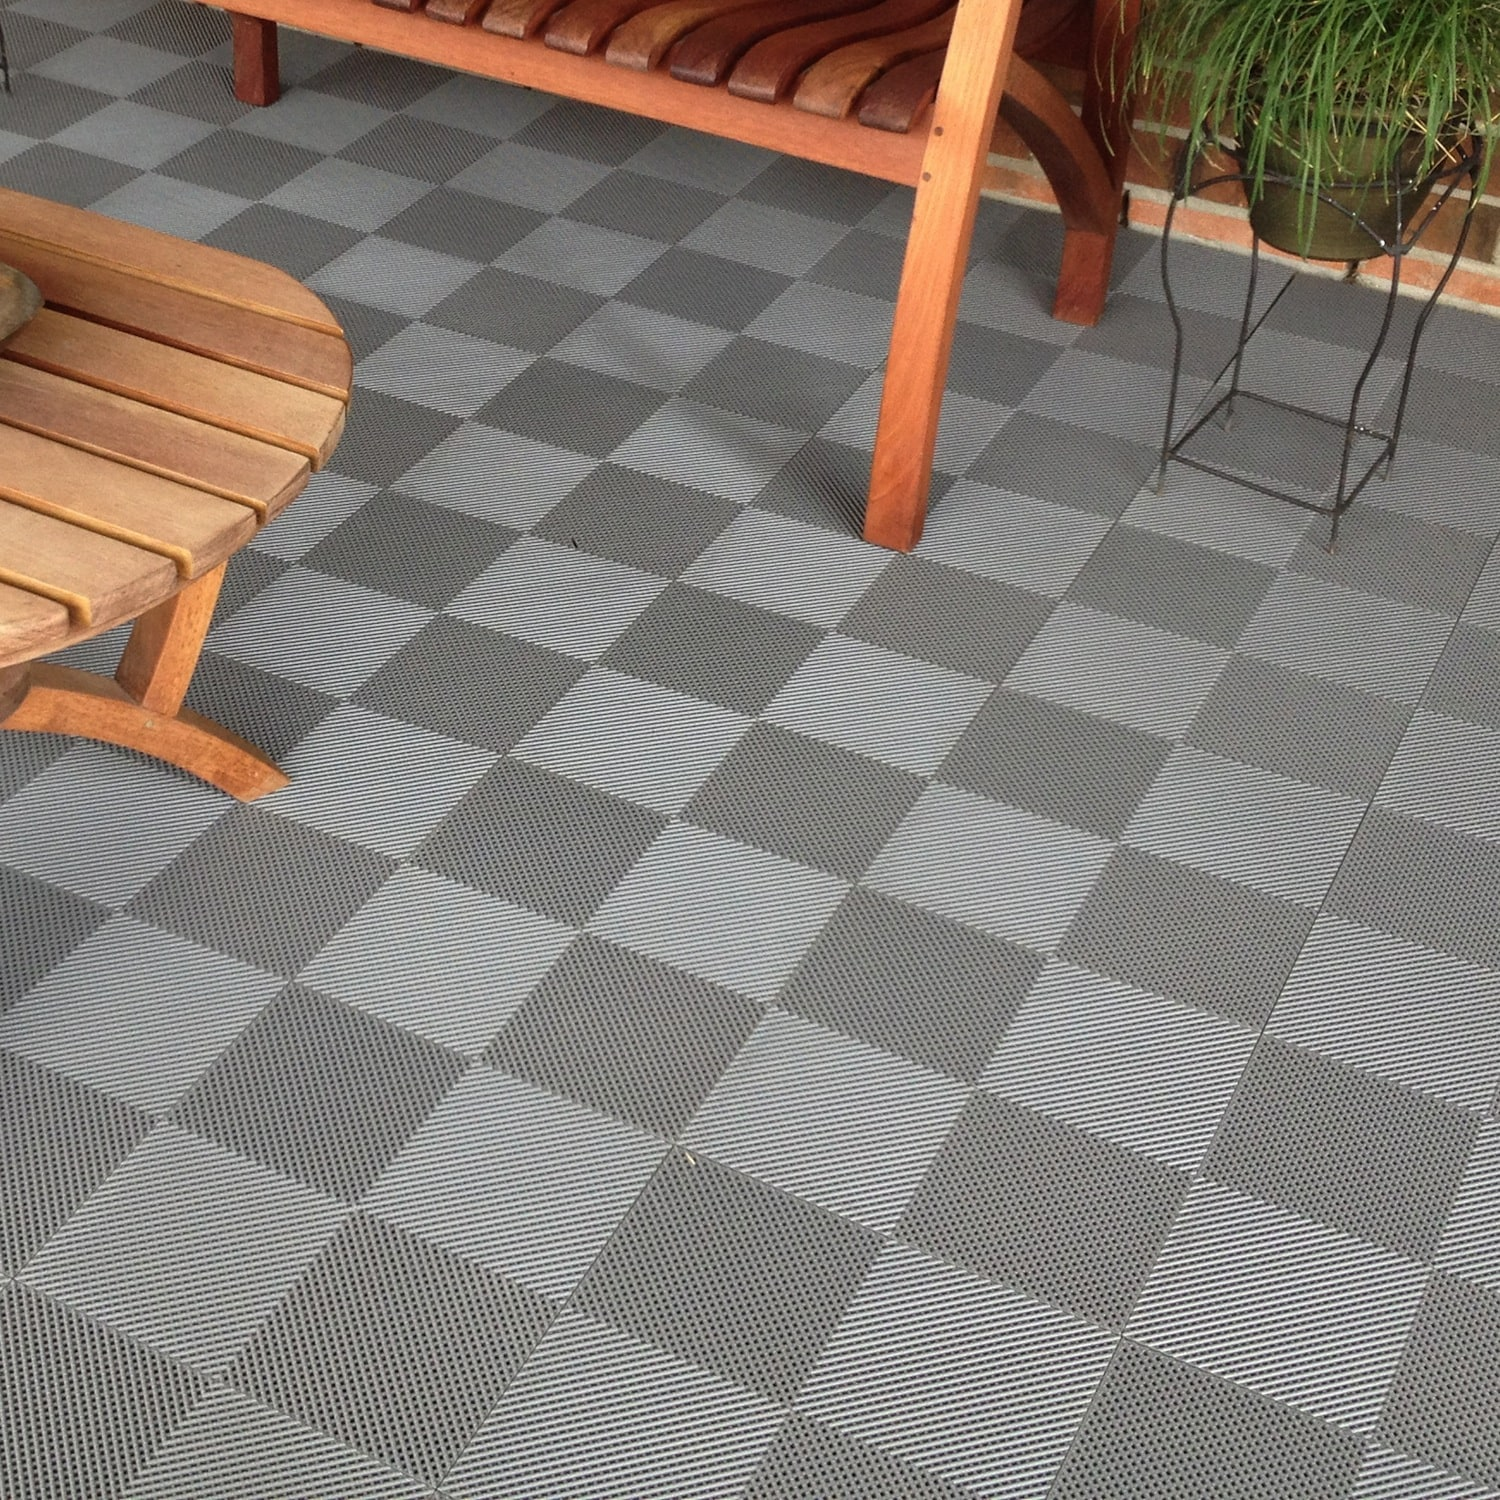 BlockTile Deck and Patio Flooring Interlocking Perforated Tiles (Pack of  30) - Free Shipping Today - Overstock.com - 14982460